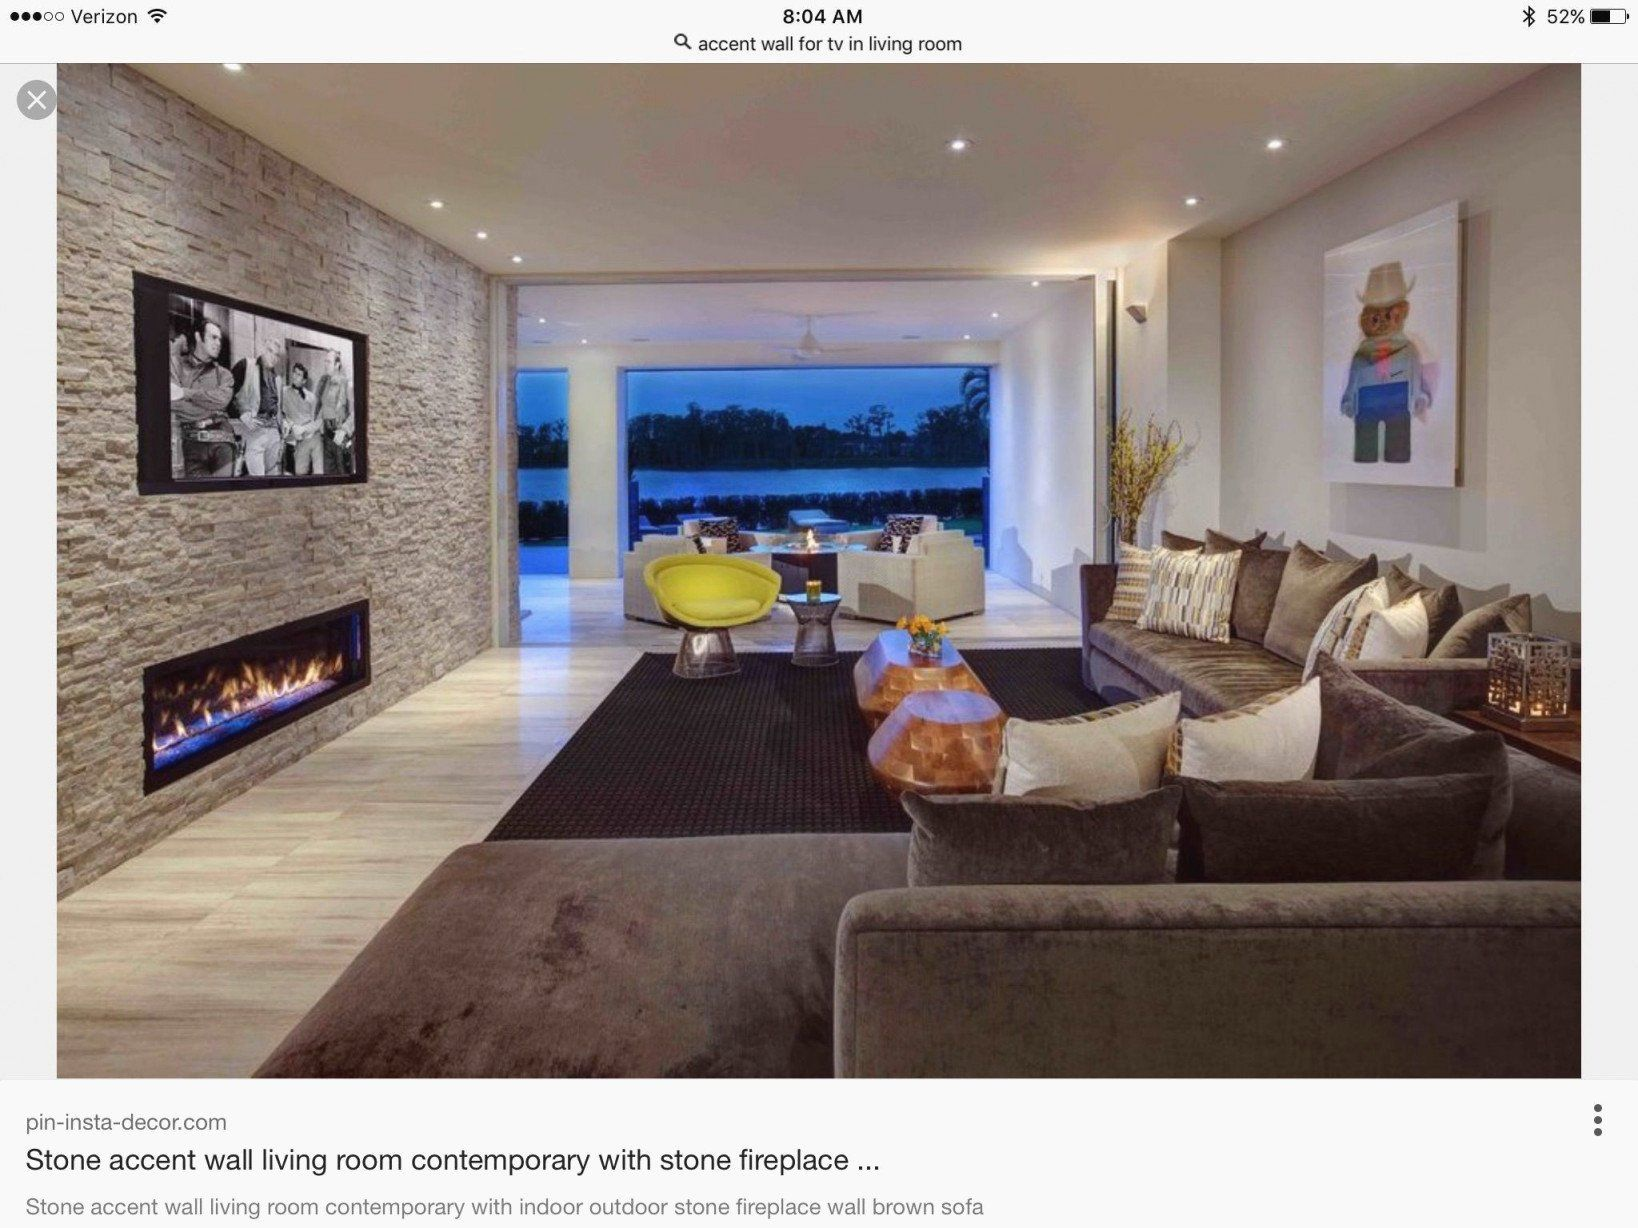 Tv Stand Ideas For Living Room Luxury News Tv Wall Living Room Design Ruang Keluarga Kecil Dekorasi Ruang Keluarga Desain Kamar #tv #in #living #room #with #fireplace